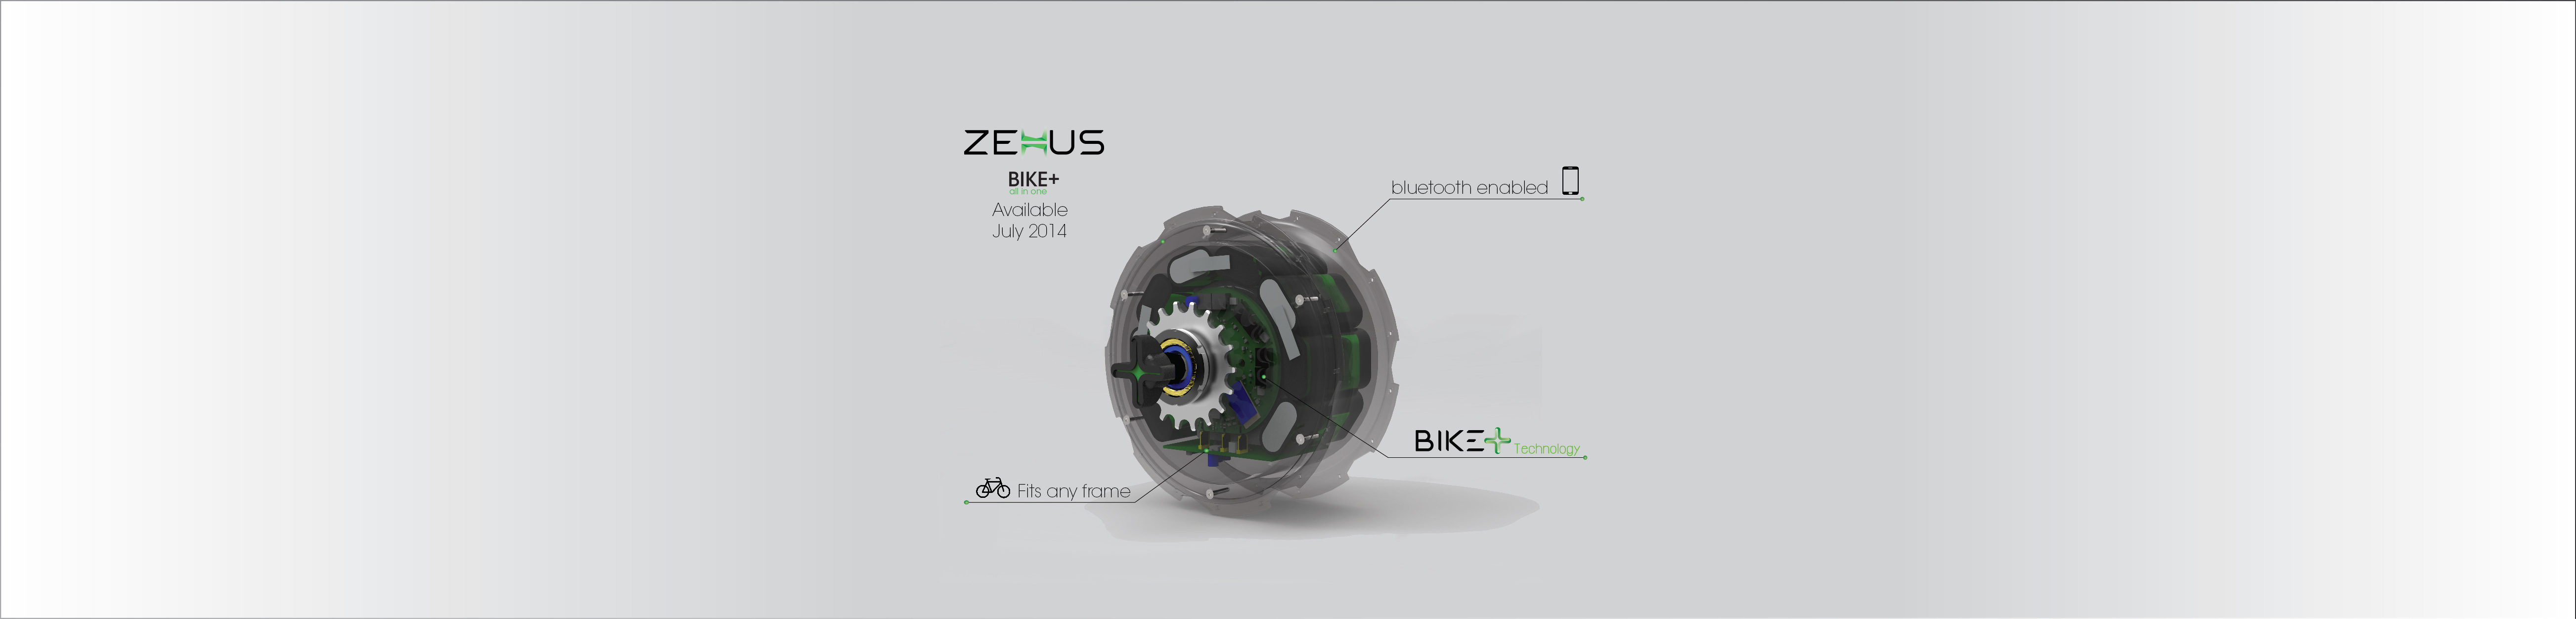 Zehus Bike+ all in one